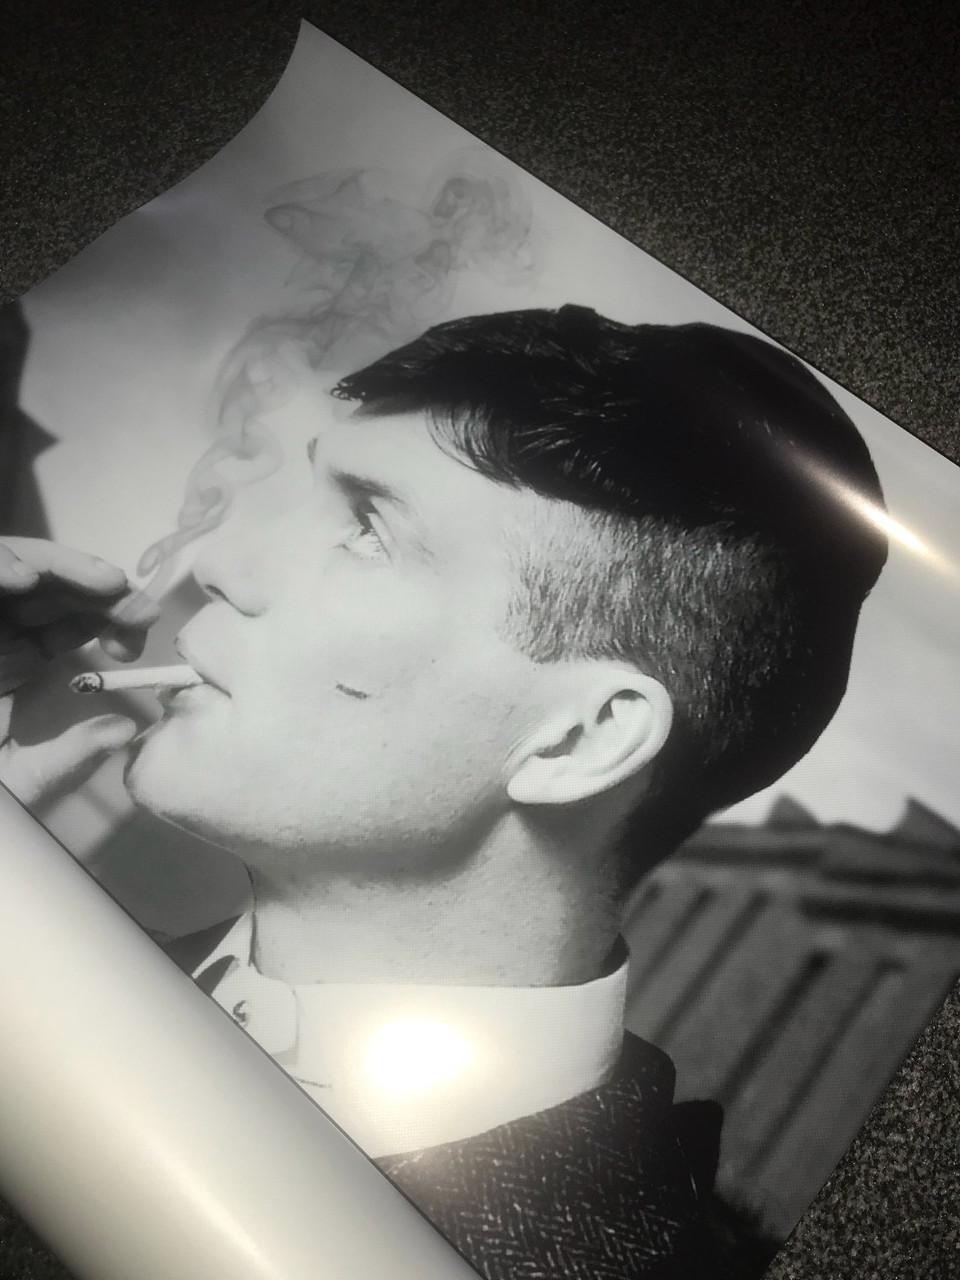 tommy shelby kiss canvas or poster wall decor art peaky blinders uk tv show smoking stocking filler present gift idea cillian murphy